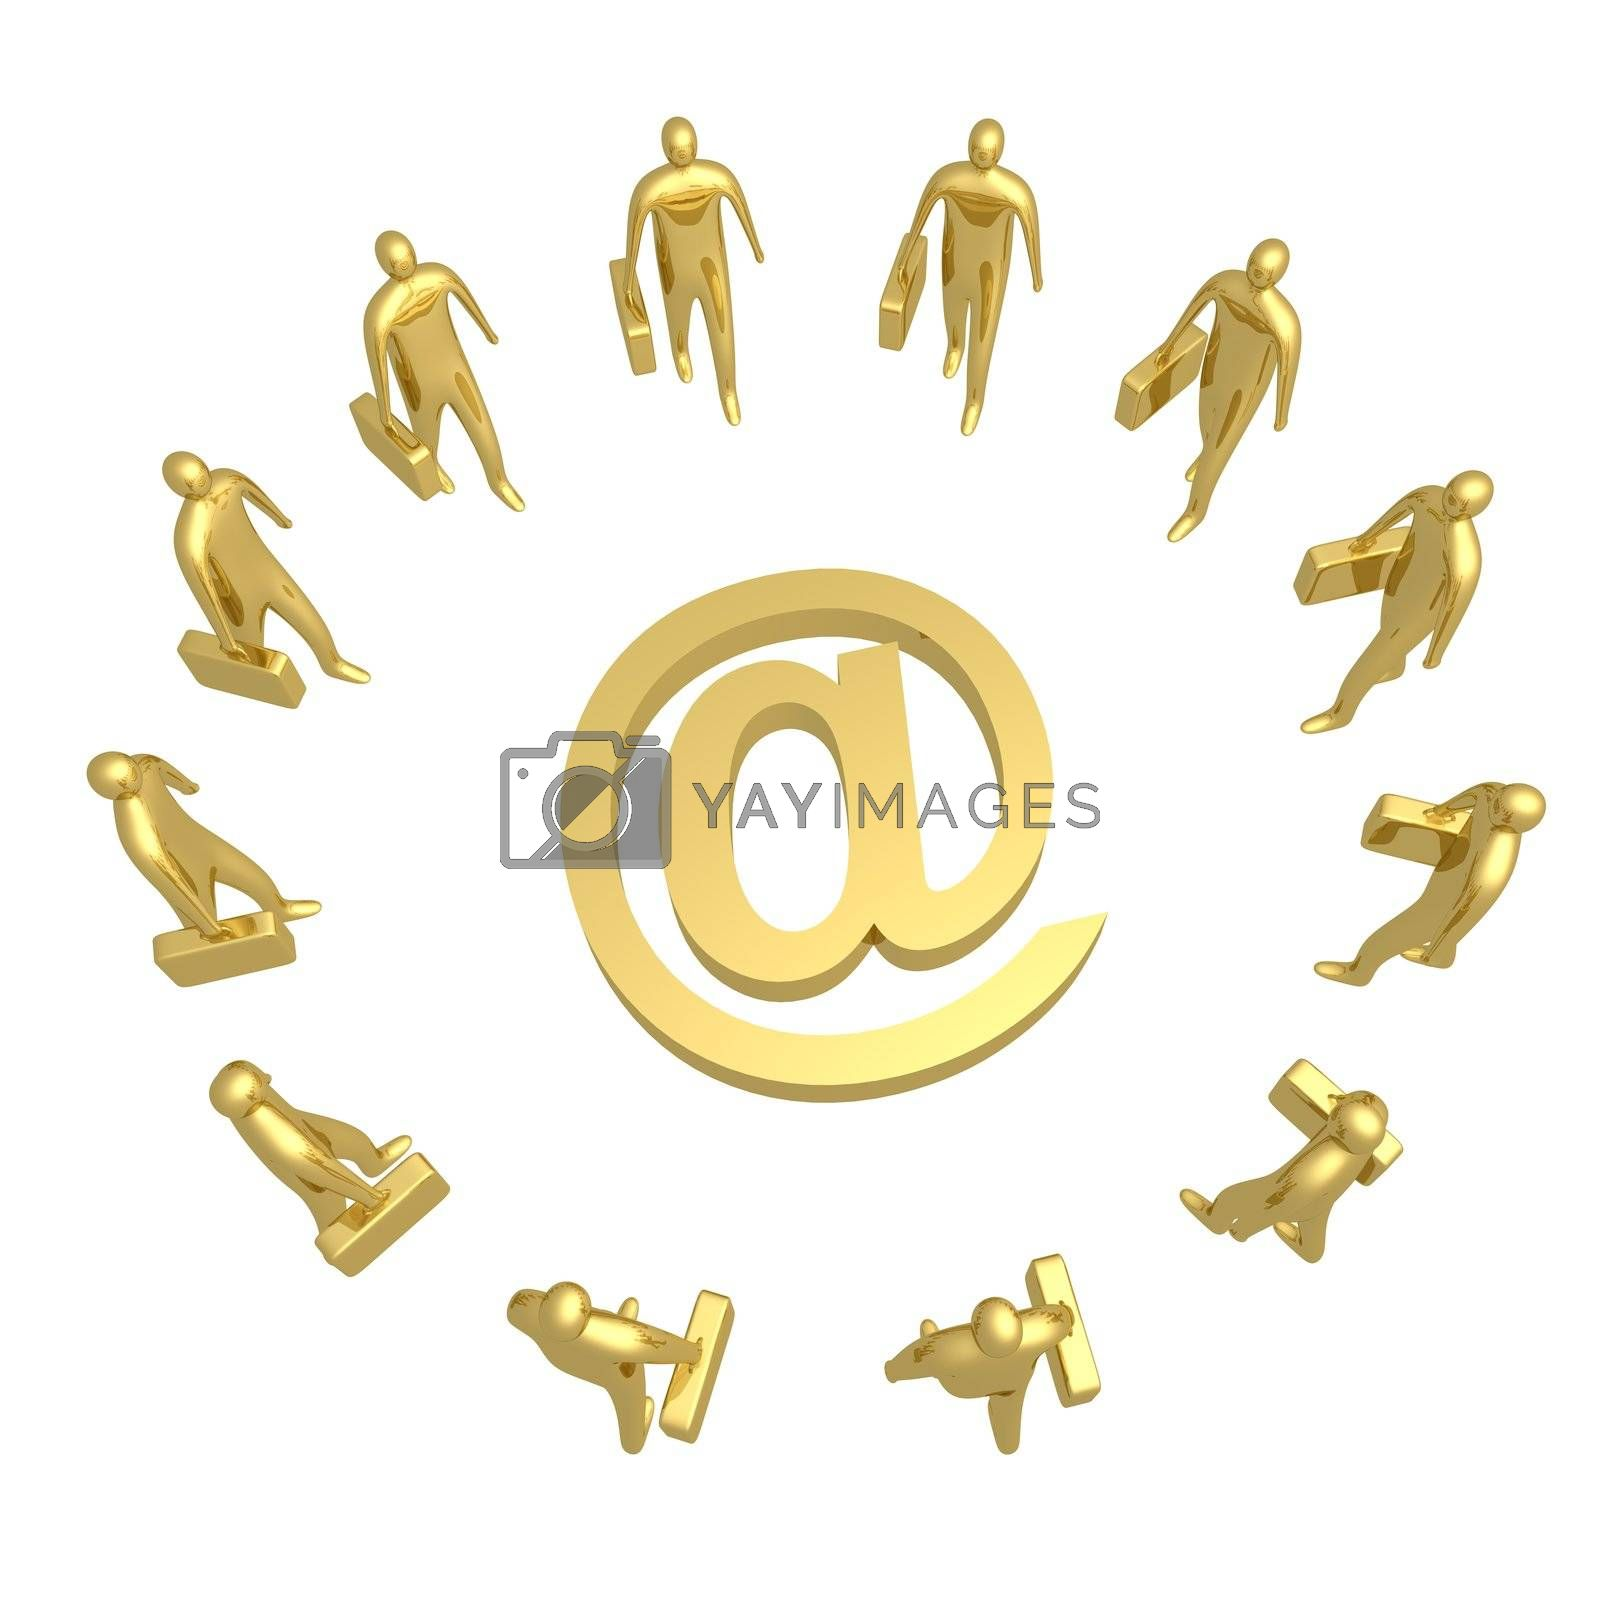 Royalty free image of E-business by 3pod